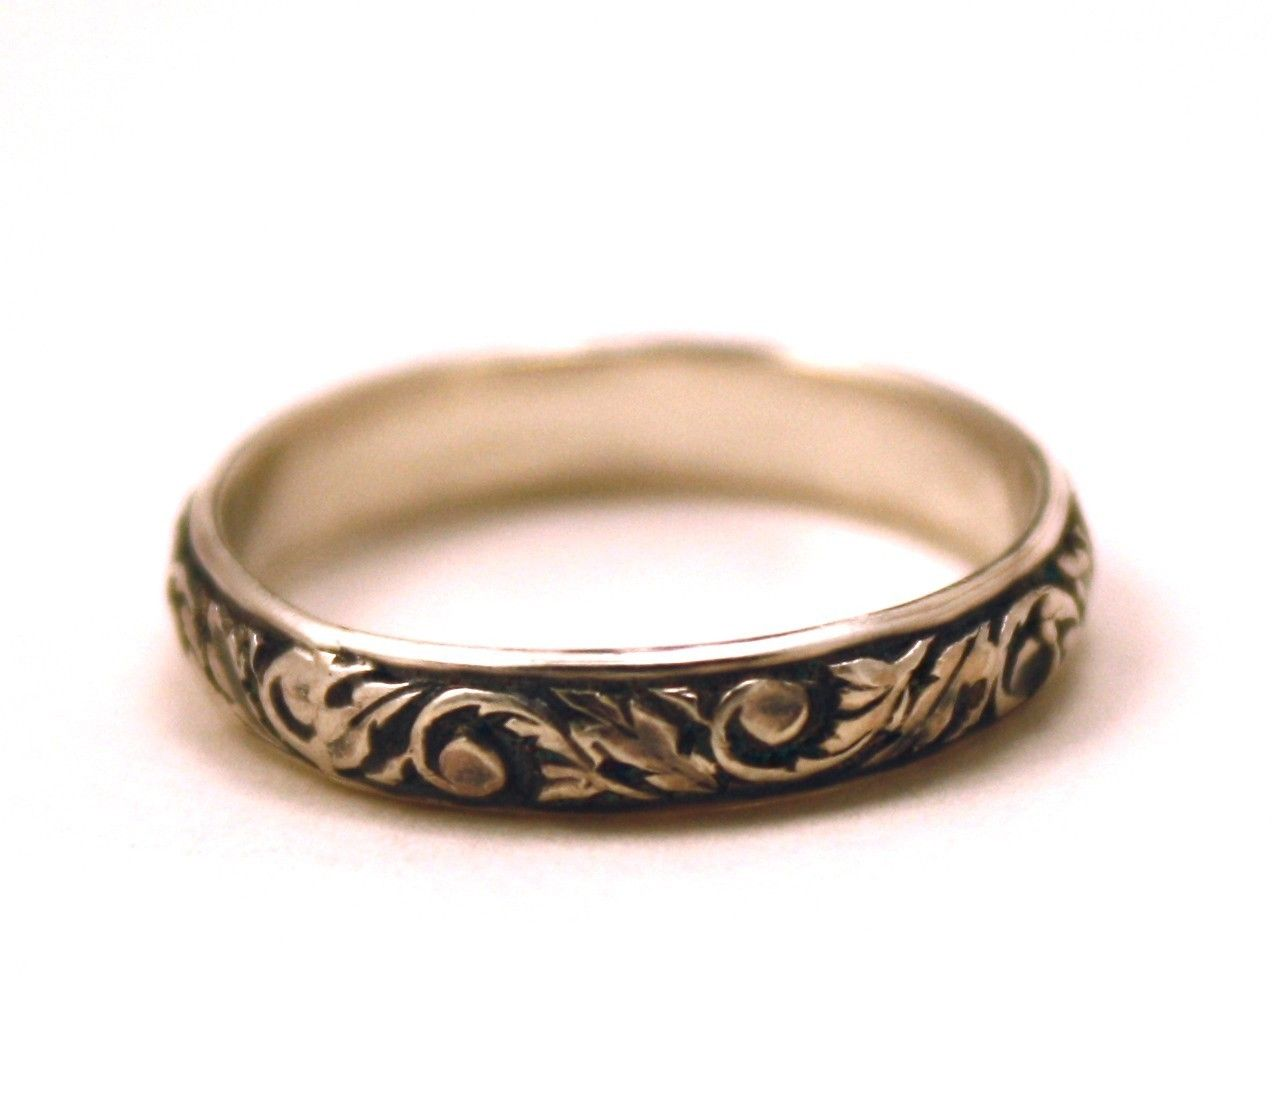 Wedding Ring Engraving Victorian Wedding Band Oxidized Scroll By Studiometalsmith